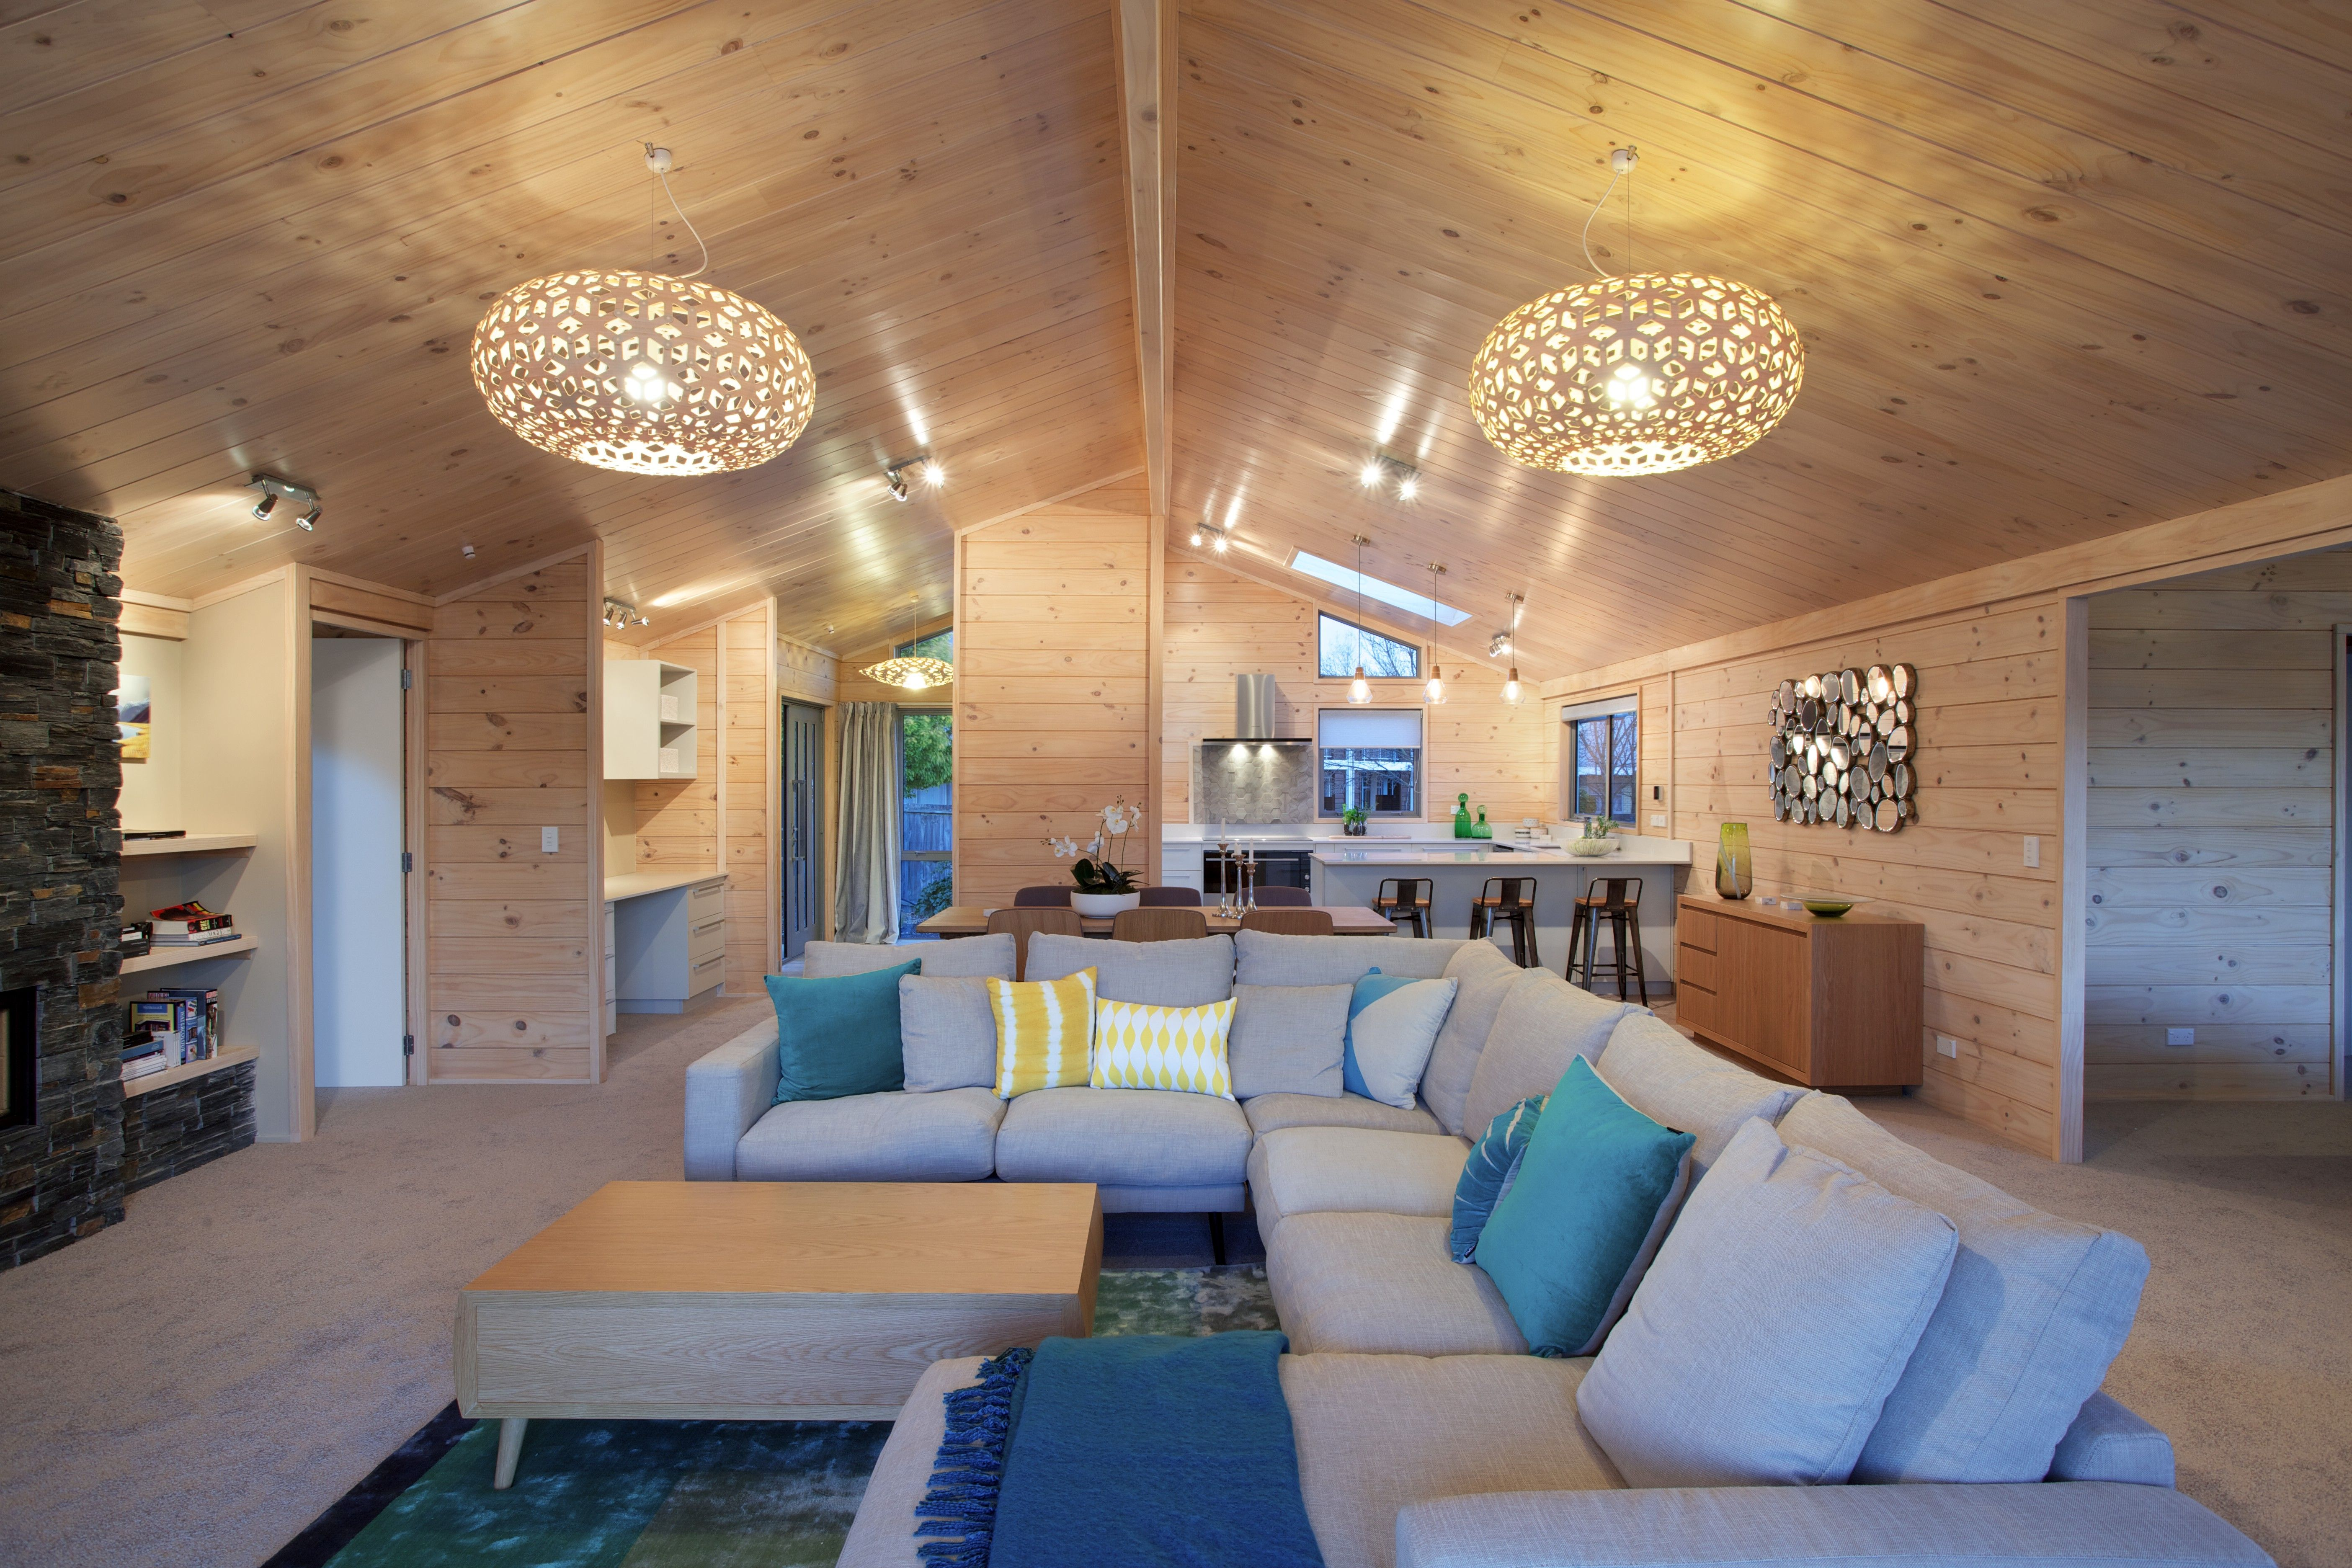 Solid Blonded Timber Interior With Raked Ceiling In New